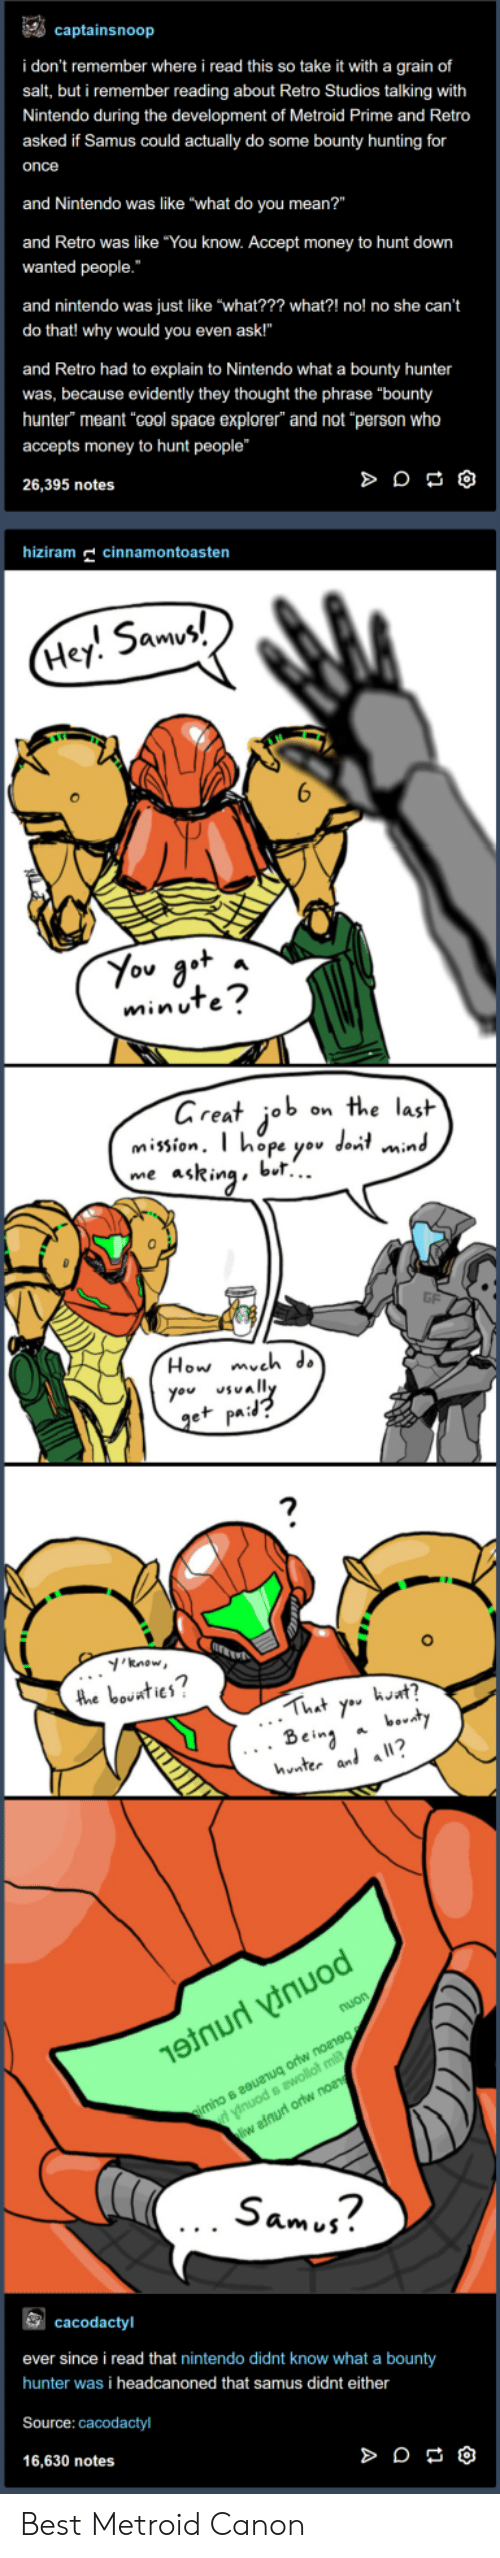 """bounty hunter: captainsnoop  i don't remember where i read this so take it with a grain of  salt, but i remember reading about Retro Studios talking with  Nintendo during the development of Metroid Prime and Retro  asked if Samus could actually do some bounty hunting for  once  and Nintendo was like """"what do you mean?""""  and Retro was like """"You know. Accept money to hunt down  wanted people.  and nintendo was just like """"what??? what?! no! no she can't  do that! why would you even ask!""""  and Retro had to explain to Nintendo what a bounty hunter  was, because evidently they thought the phrase """"bounty  hunter"""" meant cool space explorer"""" and not """"person who  accepts money to hunt people""""  26,395 notes  hizm cinnamontoasten  5am  Hey. Smv  minuTe  areat job on the lasit  mission. T hope yov dont min  me asRinabl..  0  How mveh ds  you vally  e+ pa:  'know  2  hnter al a?  Sam j?  cacodactyl  ever since i read that nintendo didnt know what a bounty  hunter was i headcanoned that samus didnt either  Source: cacodactyl  16,630 notes Best Metroid Canon"""